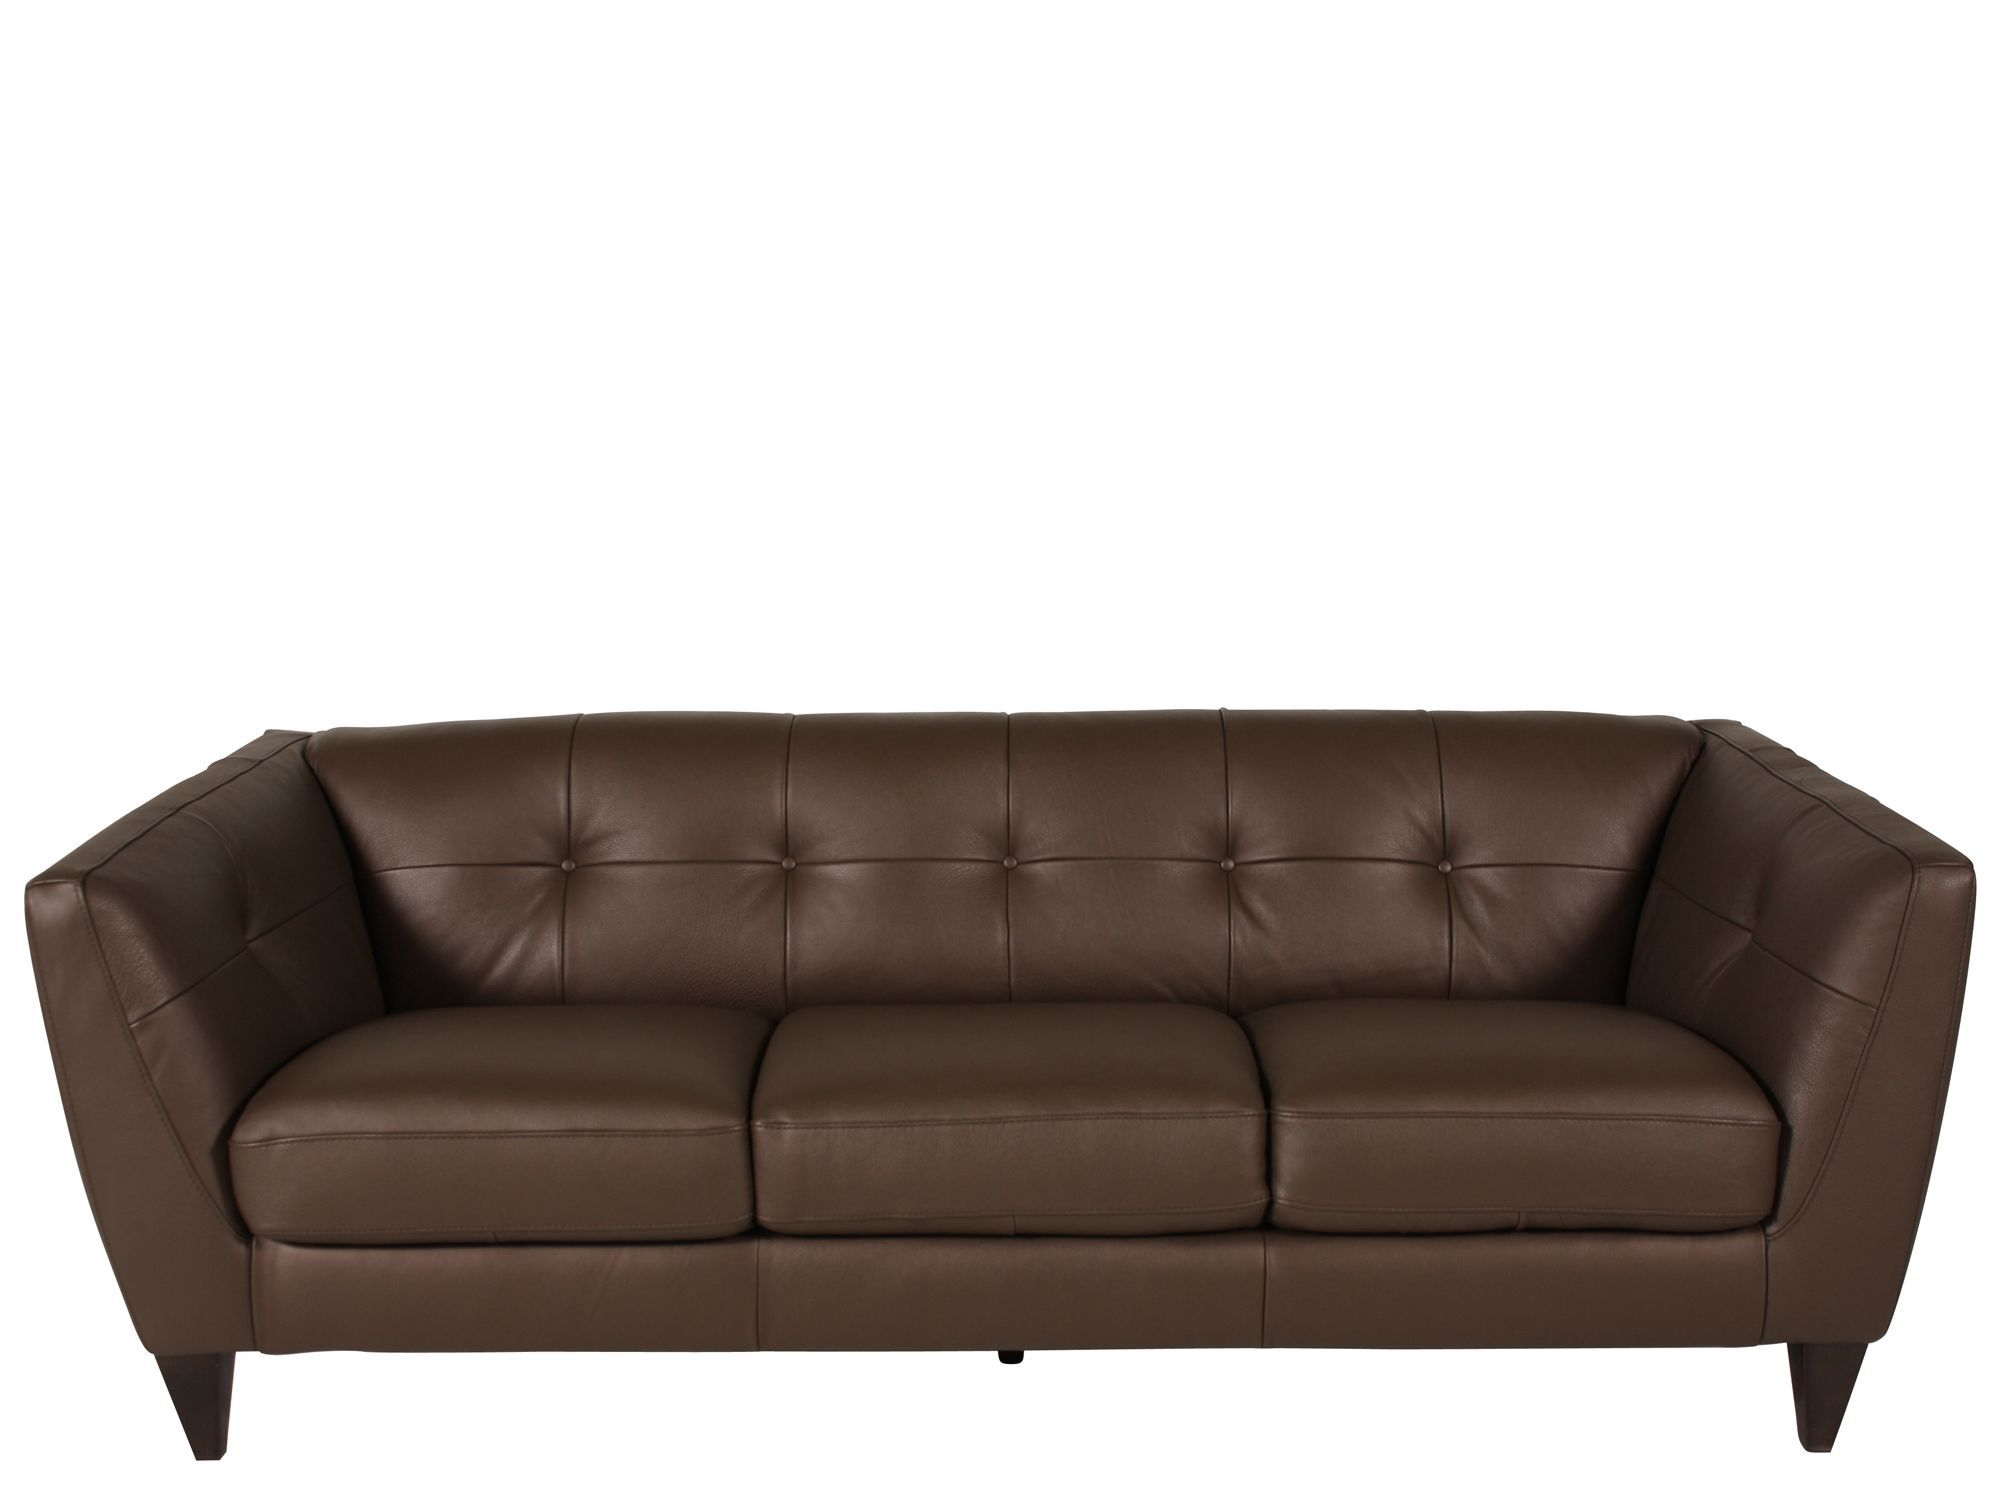 Natuzzi Mushroom Leather Sofa decor Pinterest